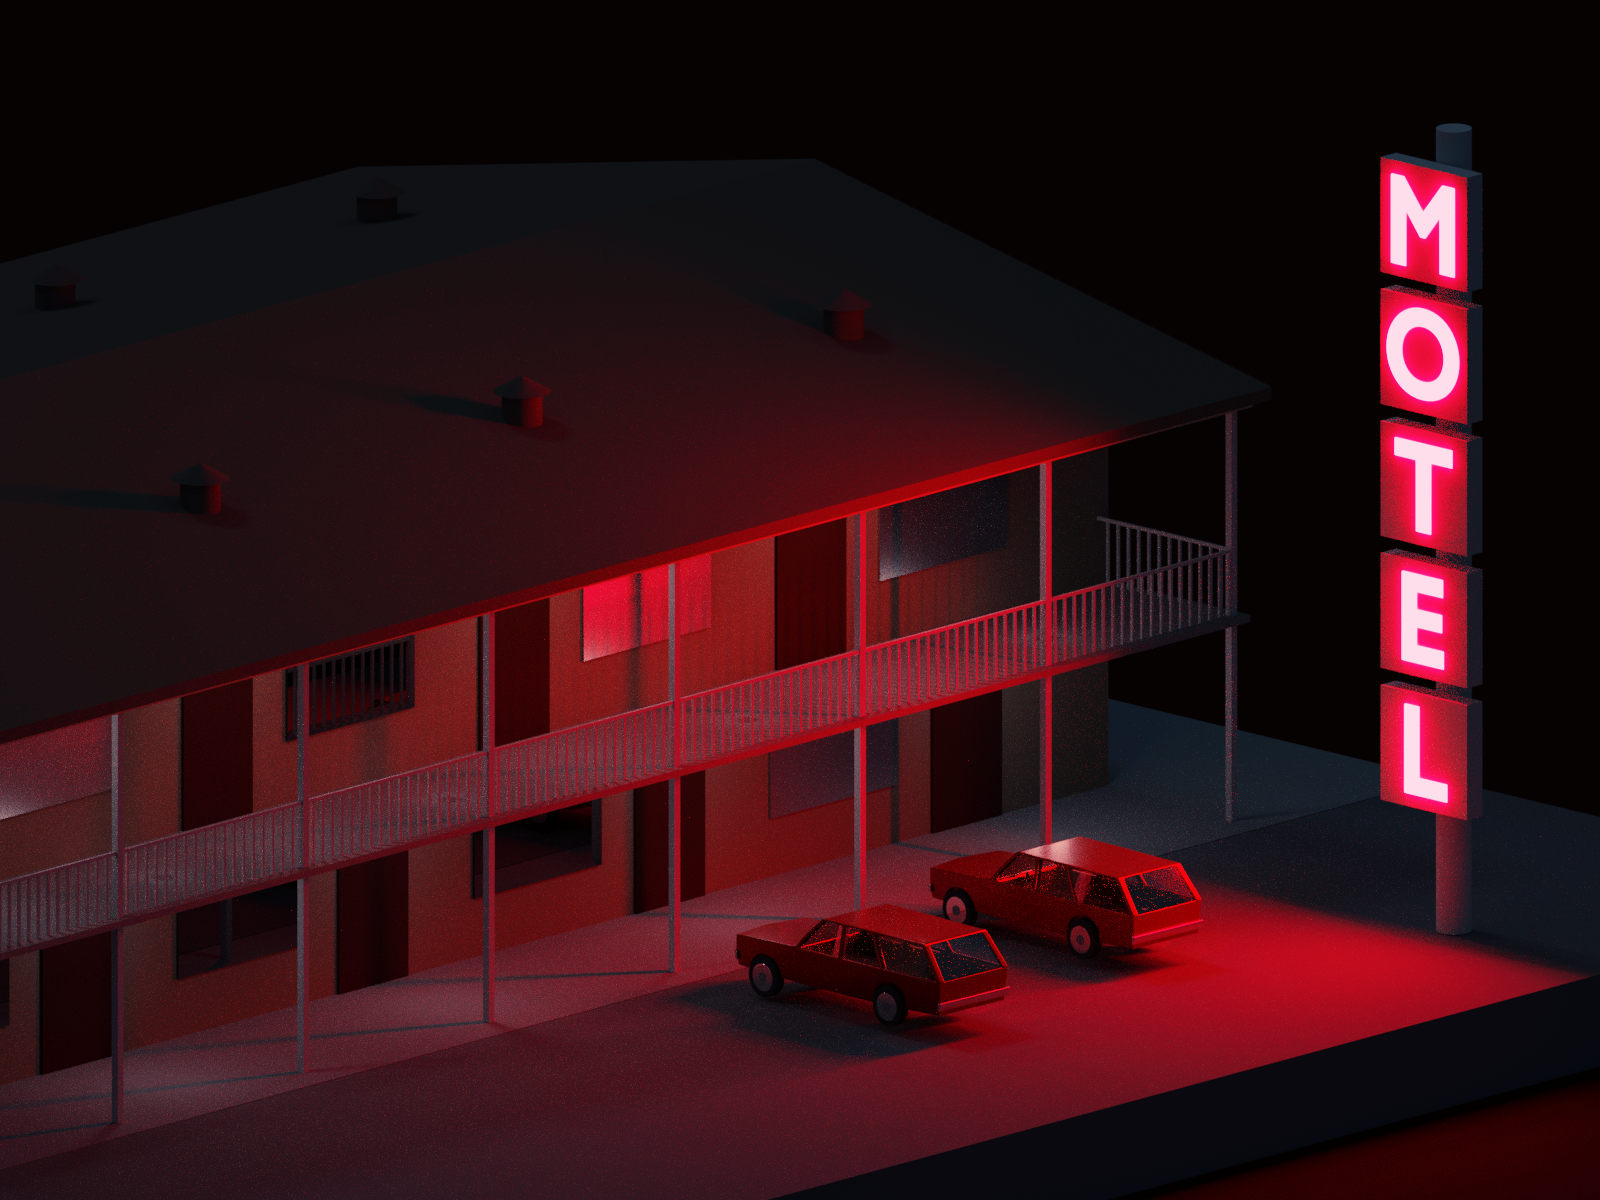 Motel with cars 1000